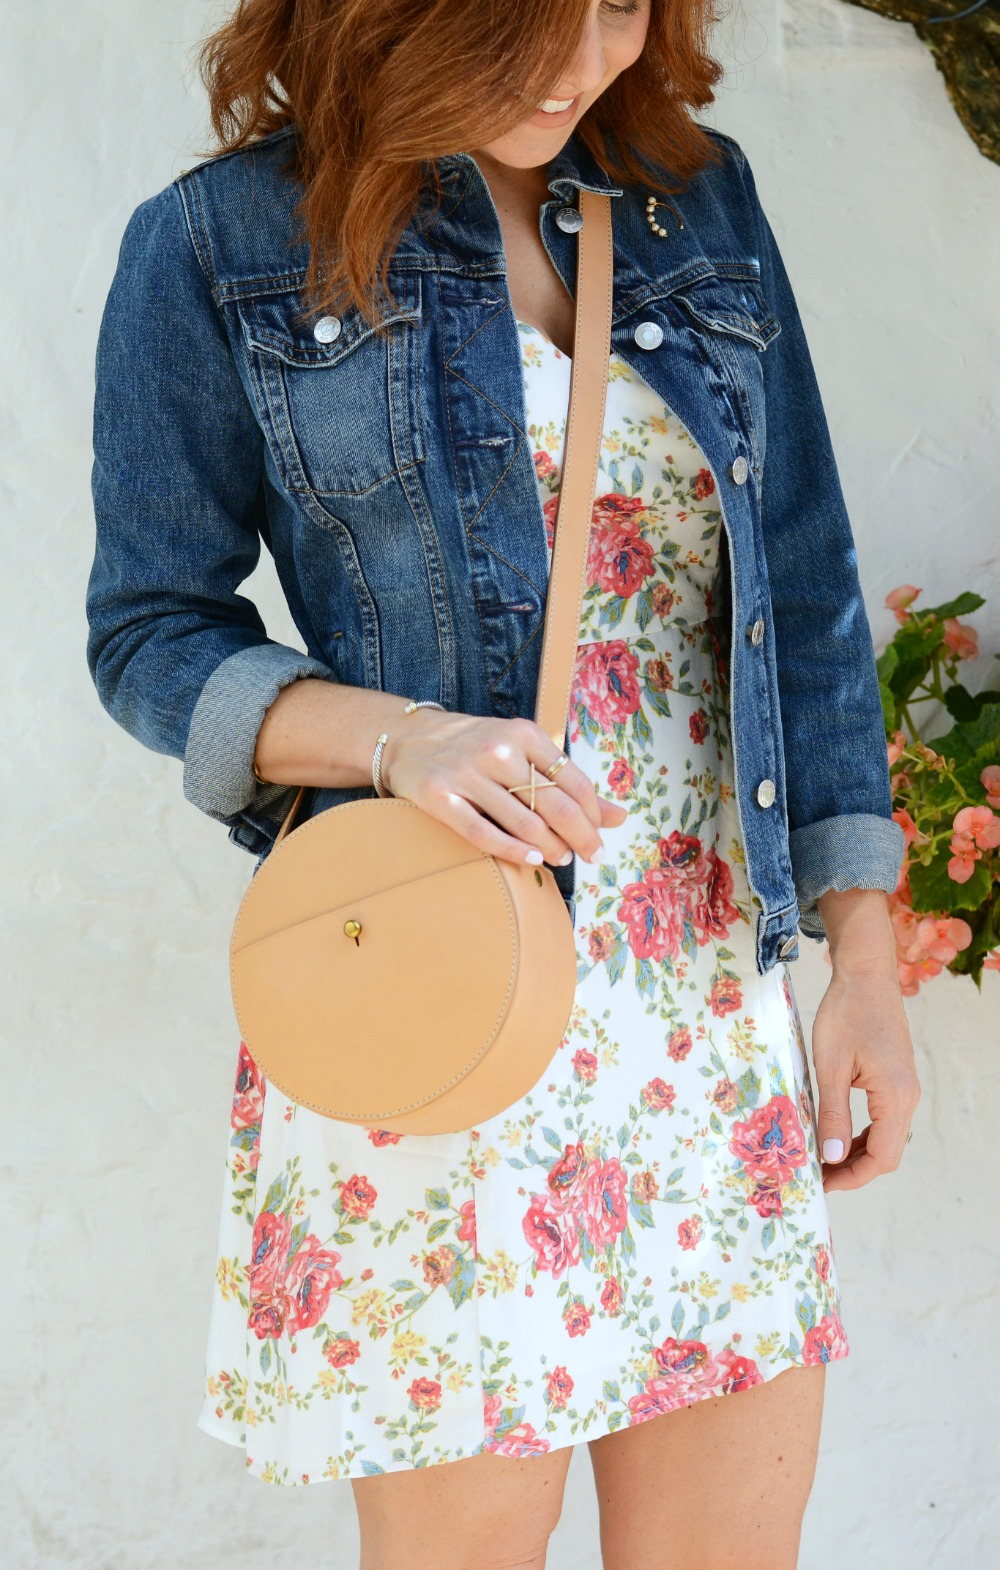 Madewell circle bag completes a timeless spring look // modern savvy, a life & style blog for women over 30